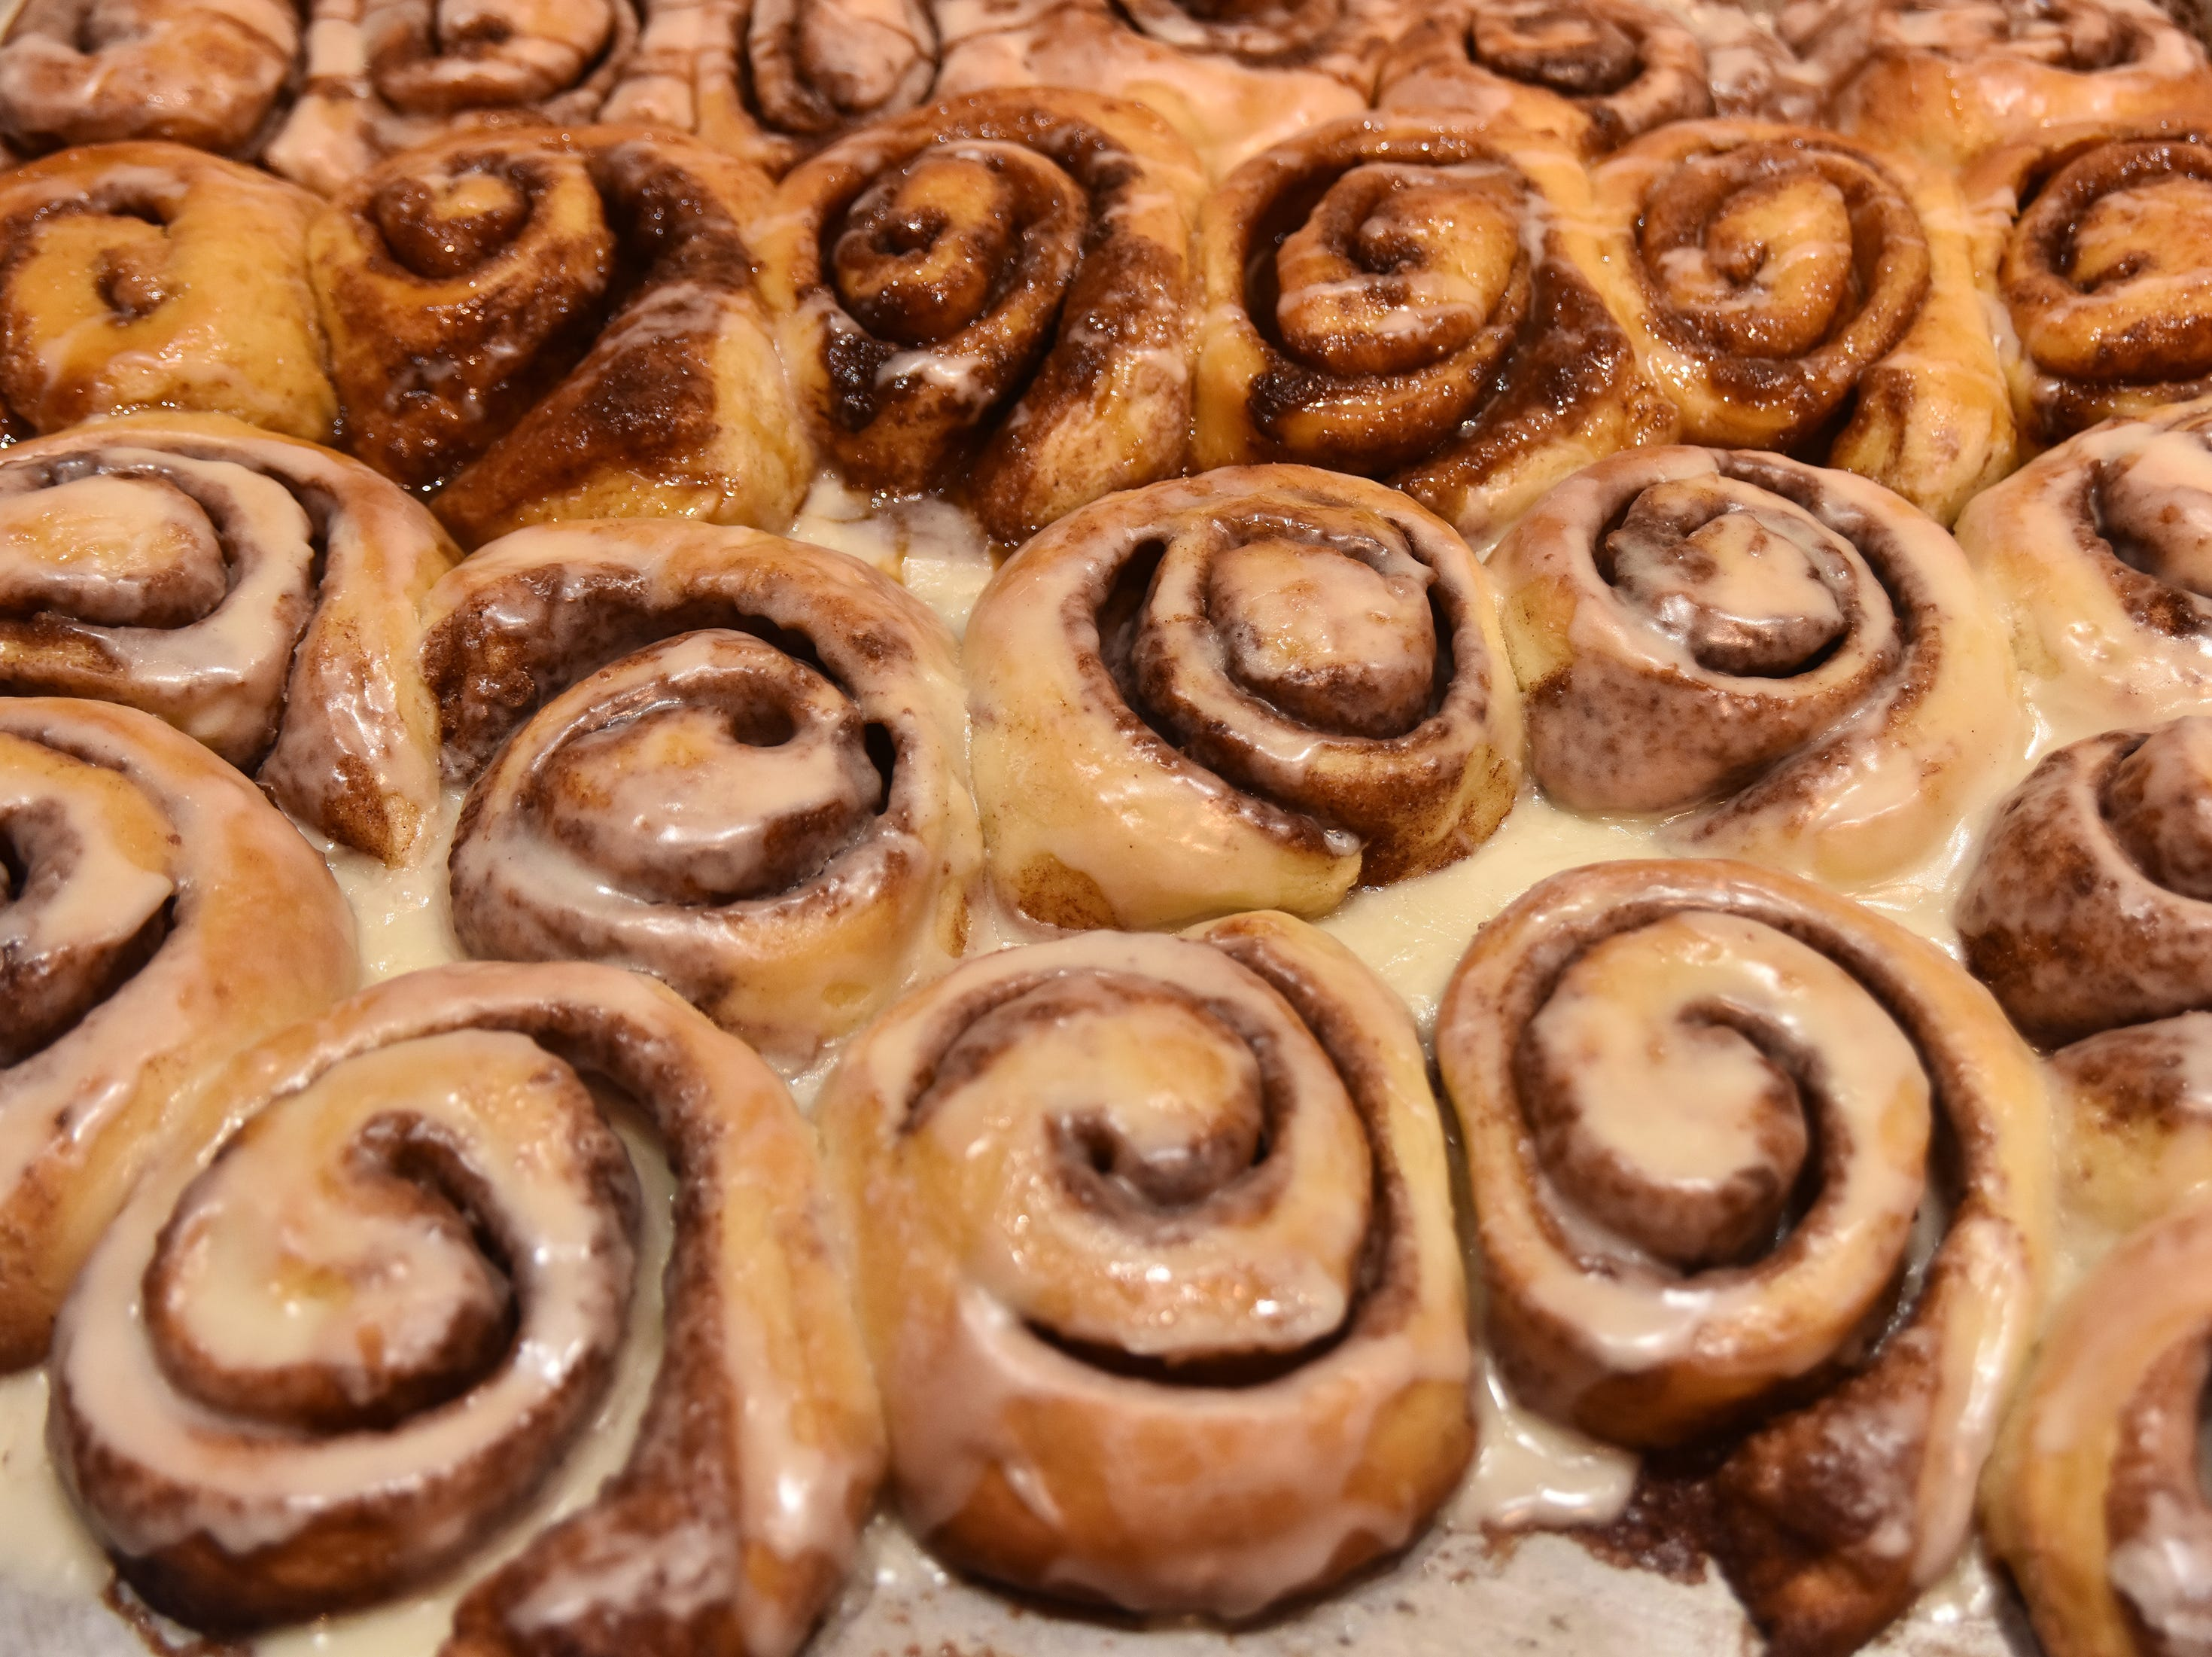 Cinnamon rolls made by Cynthia Willaims.